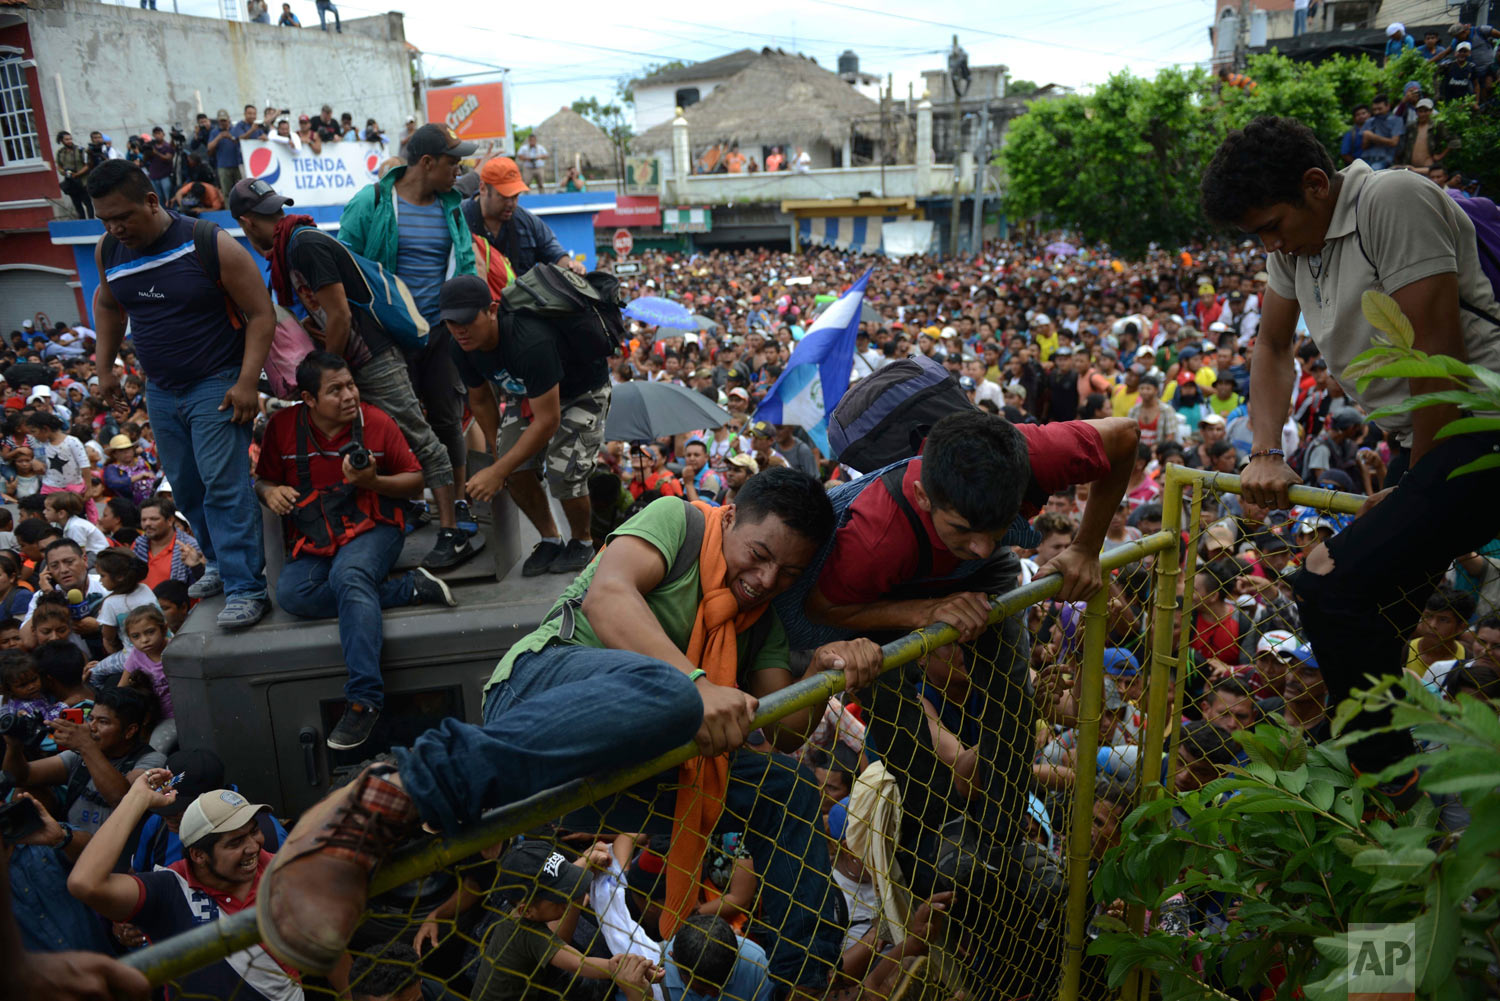 In this Oct. 19, 2018 photo, Central American migrants traveling in a caravan rush across Guatemala's border with Mexico in Tecun Uman, Guatemala. After arriving at the fence, some climbed atop it and on U.S.-donated military jeeps, finally succeeding in tearing down the barrier. (AP Photo/Oliver de Ros)